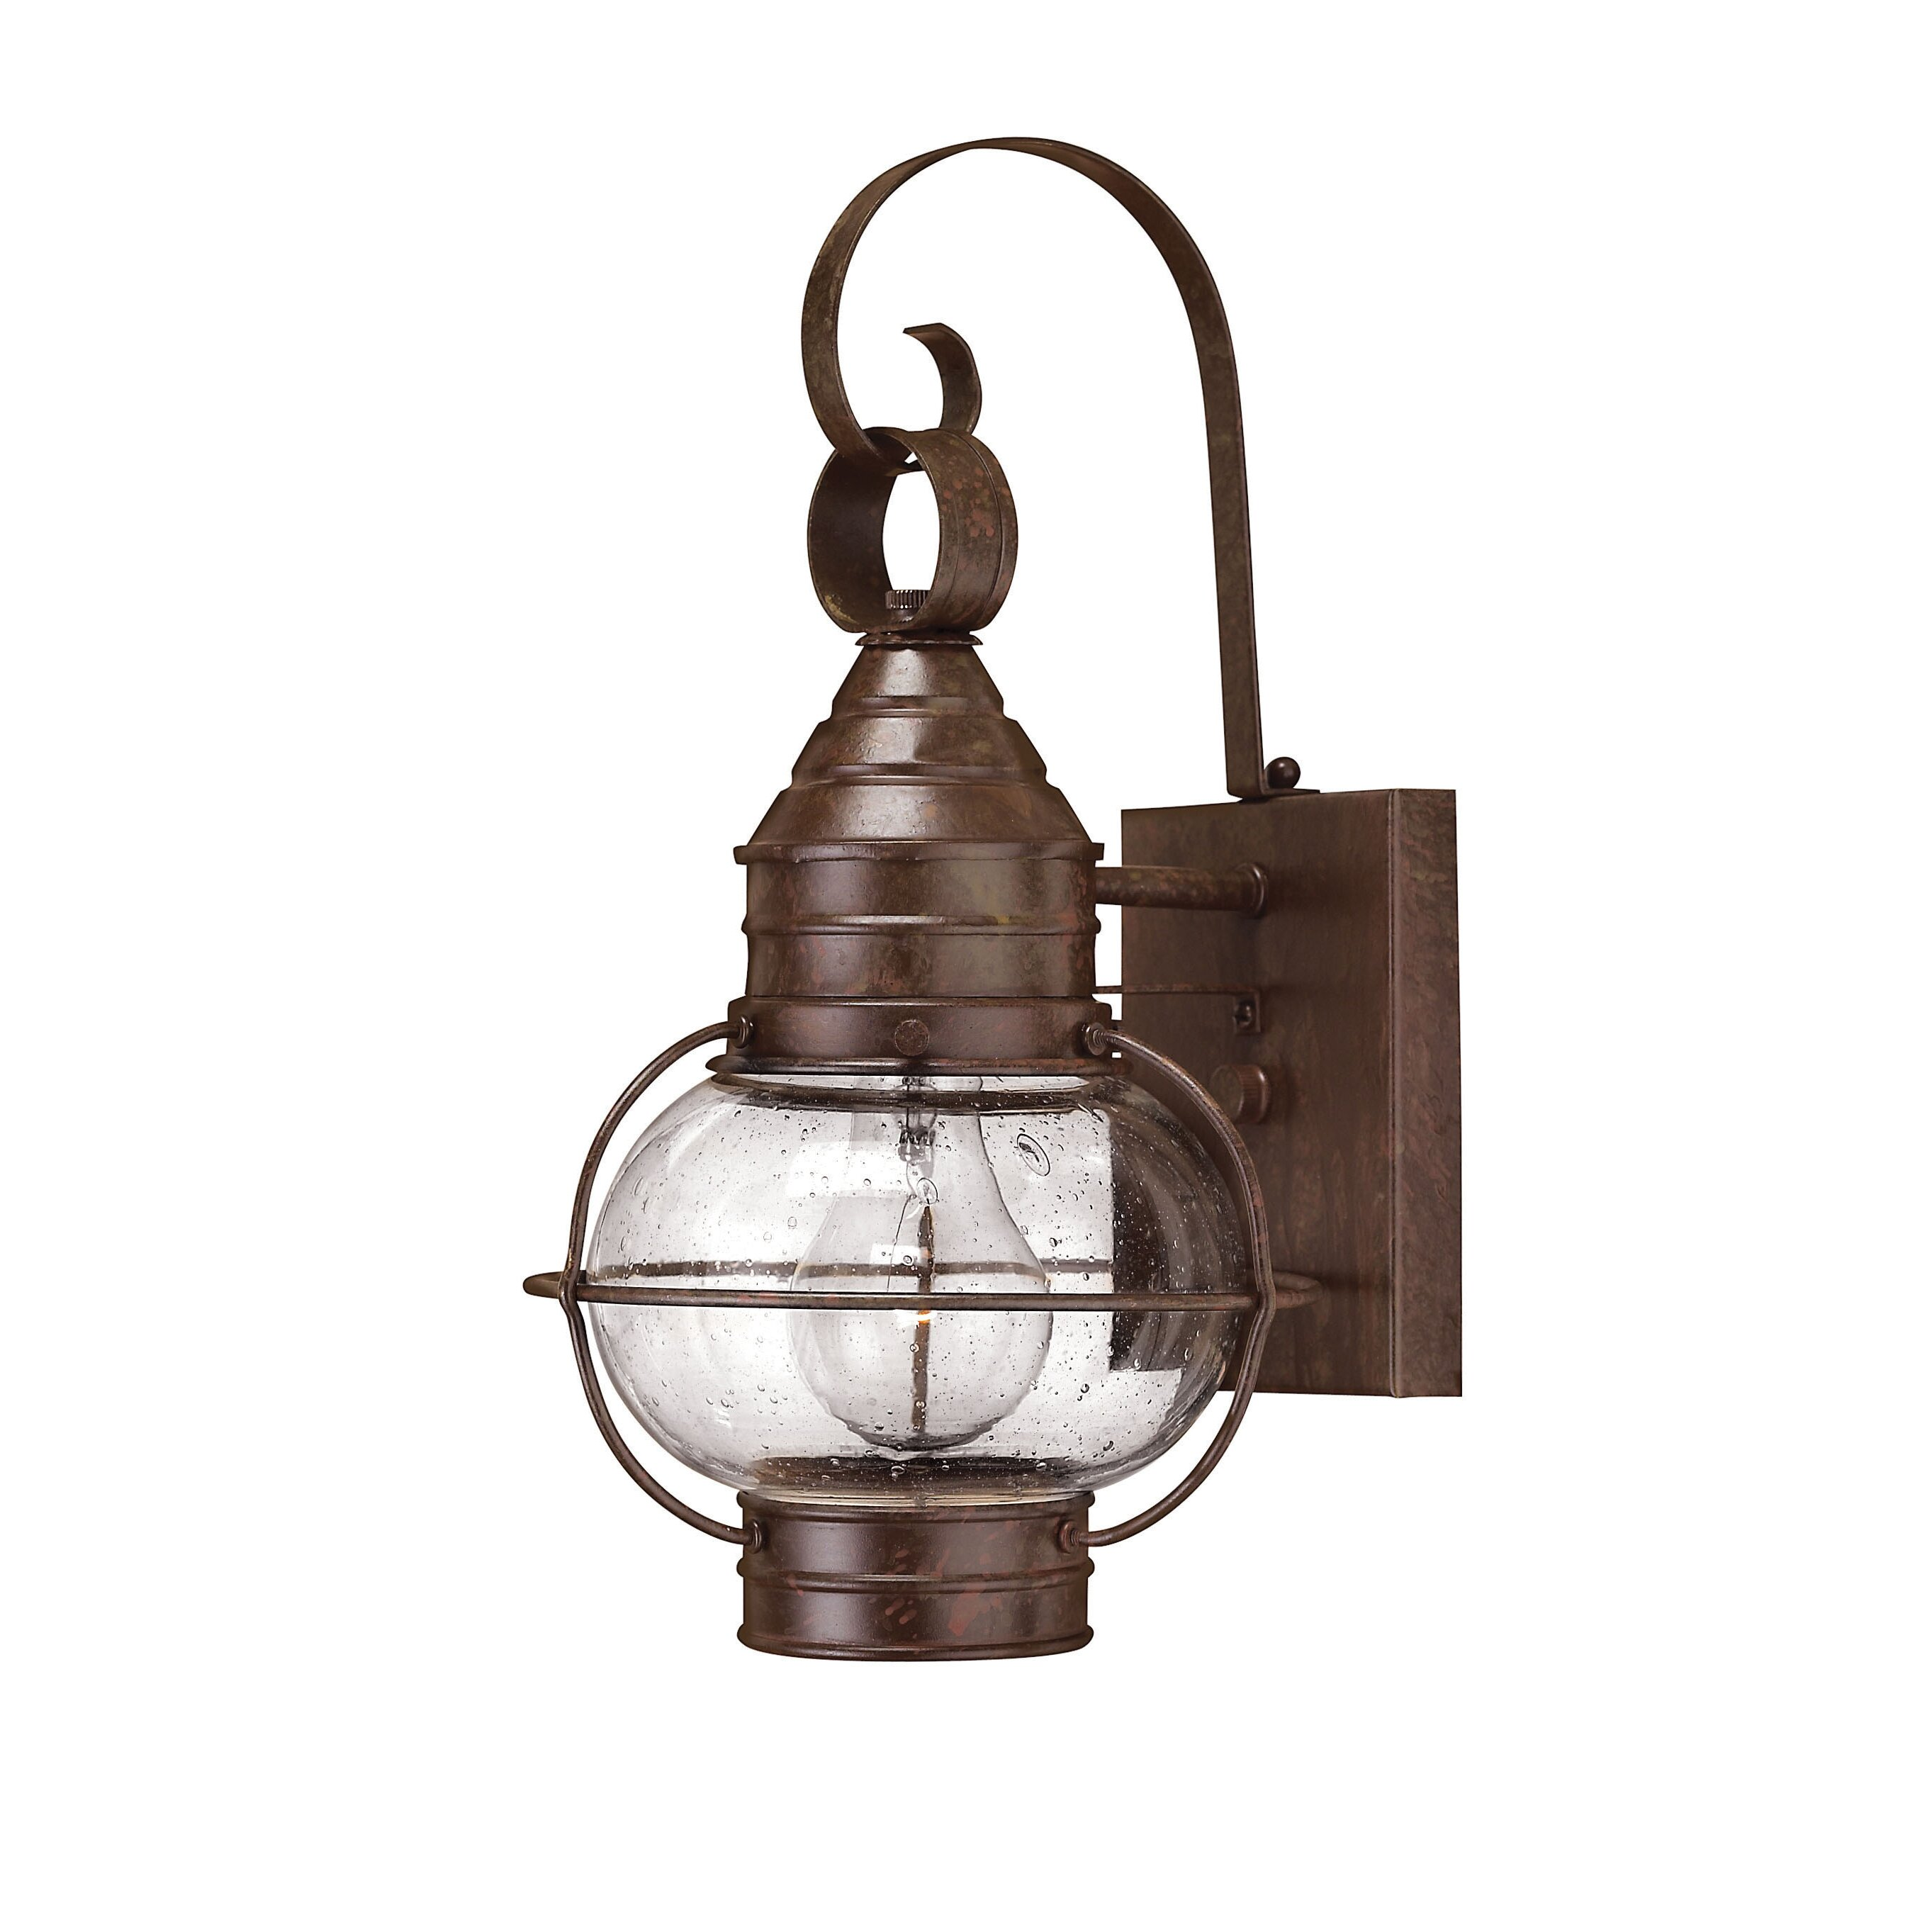 Hinkley Lighting Cape Cod 1 Light Outdoor Wall Lantern